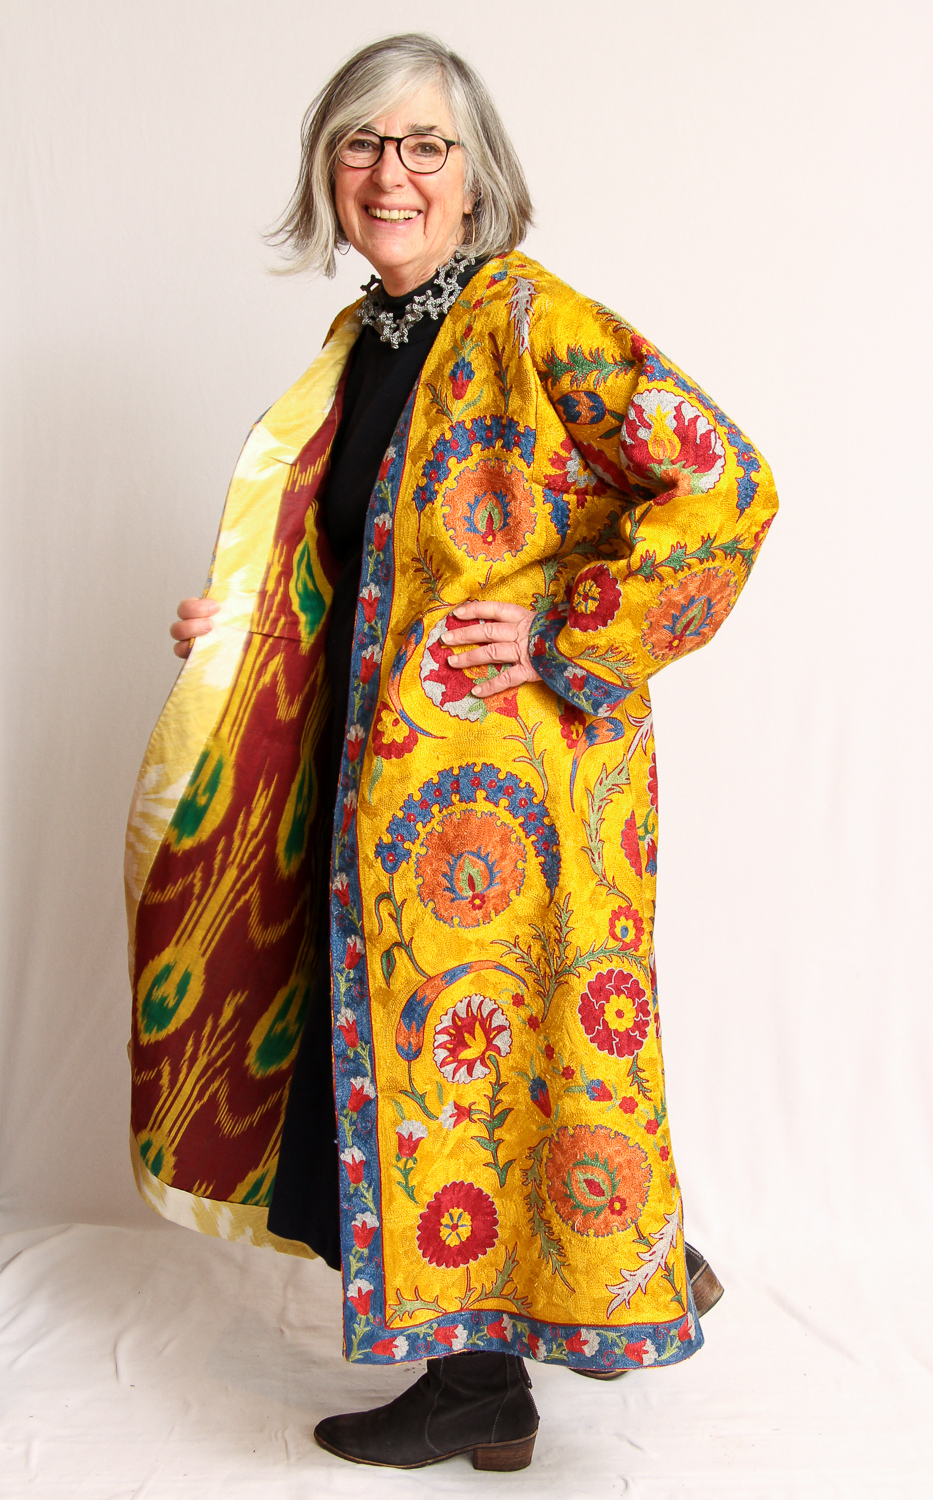 """Judith Bird - """"I fell in love with this coat when I met the man who made it in Uzbekistan. I just said, 'This is the most beautiful thing I've ever seen in my whole life.' And it's way over my pay grade to have bought it, but it didn't matter. It was just so beautiful, I couldn't not have it—which is an odd way to live. But, we all have times when things are that special. I don't take it to the grocery store.As for my personal style, I dress every day. I take care of what I put on. I think about where I'm going, what I'm doing, what looks good with what—and it's just a playground. My wardrobe is a playground. It seems like I can do something fun almost every day."""""""